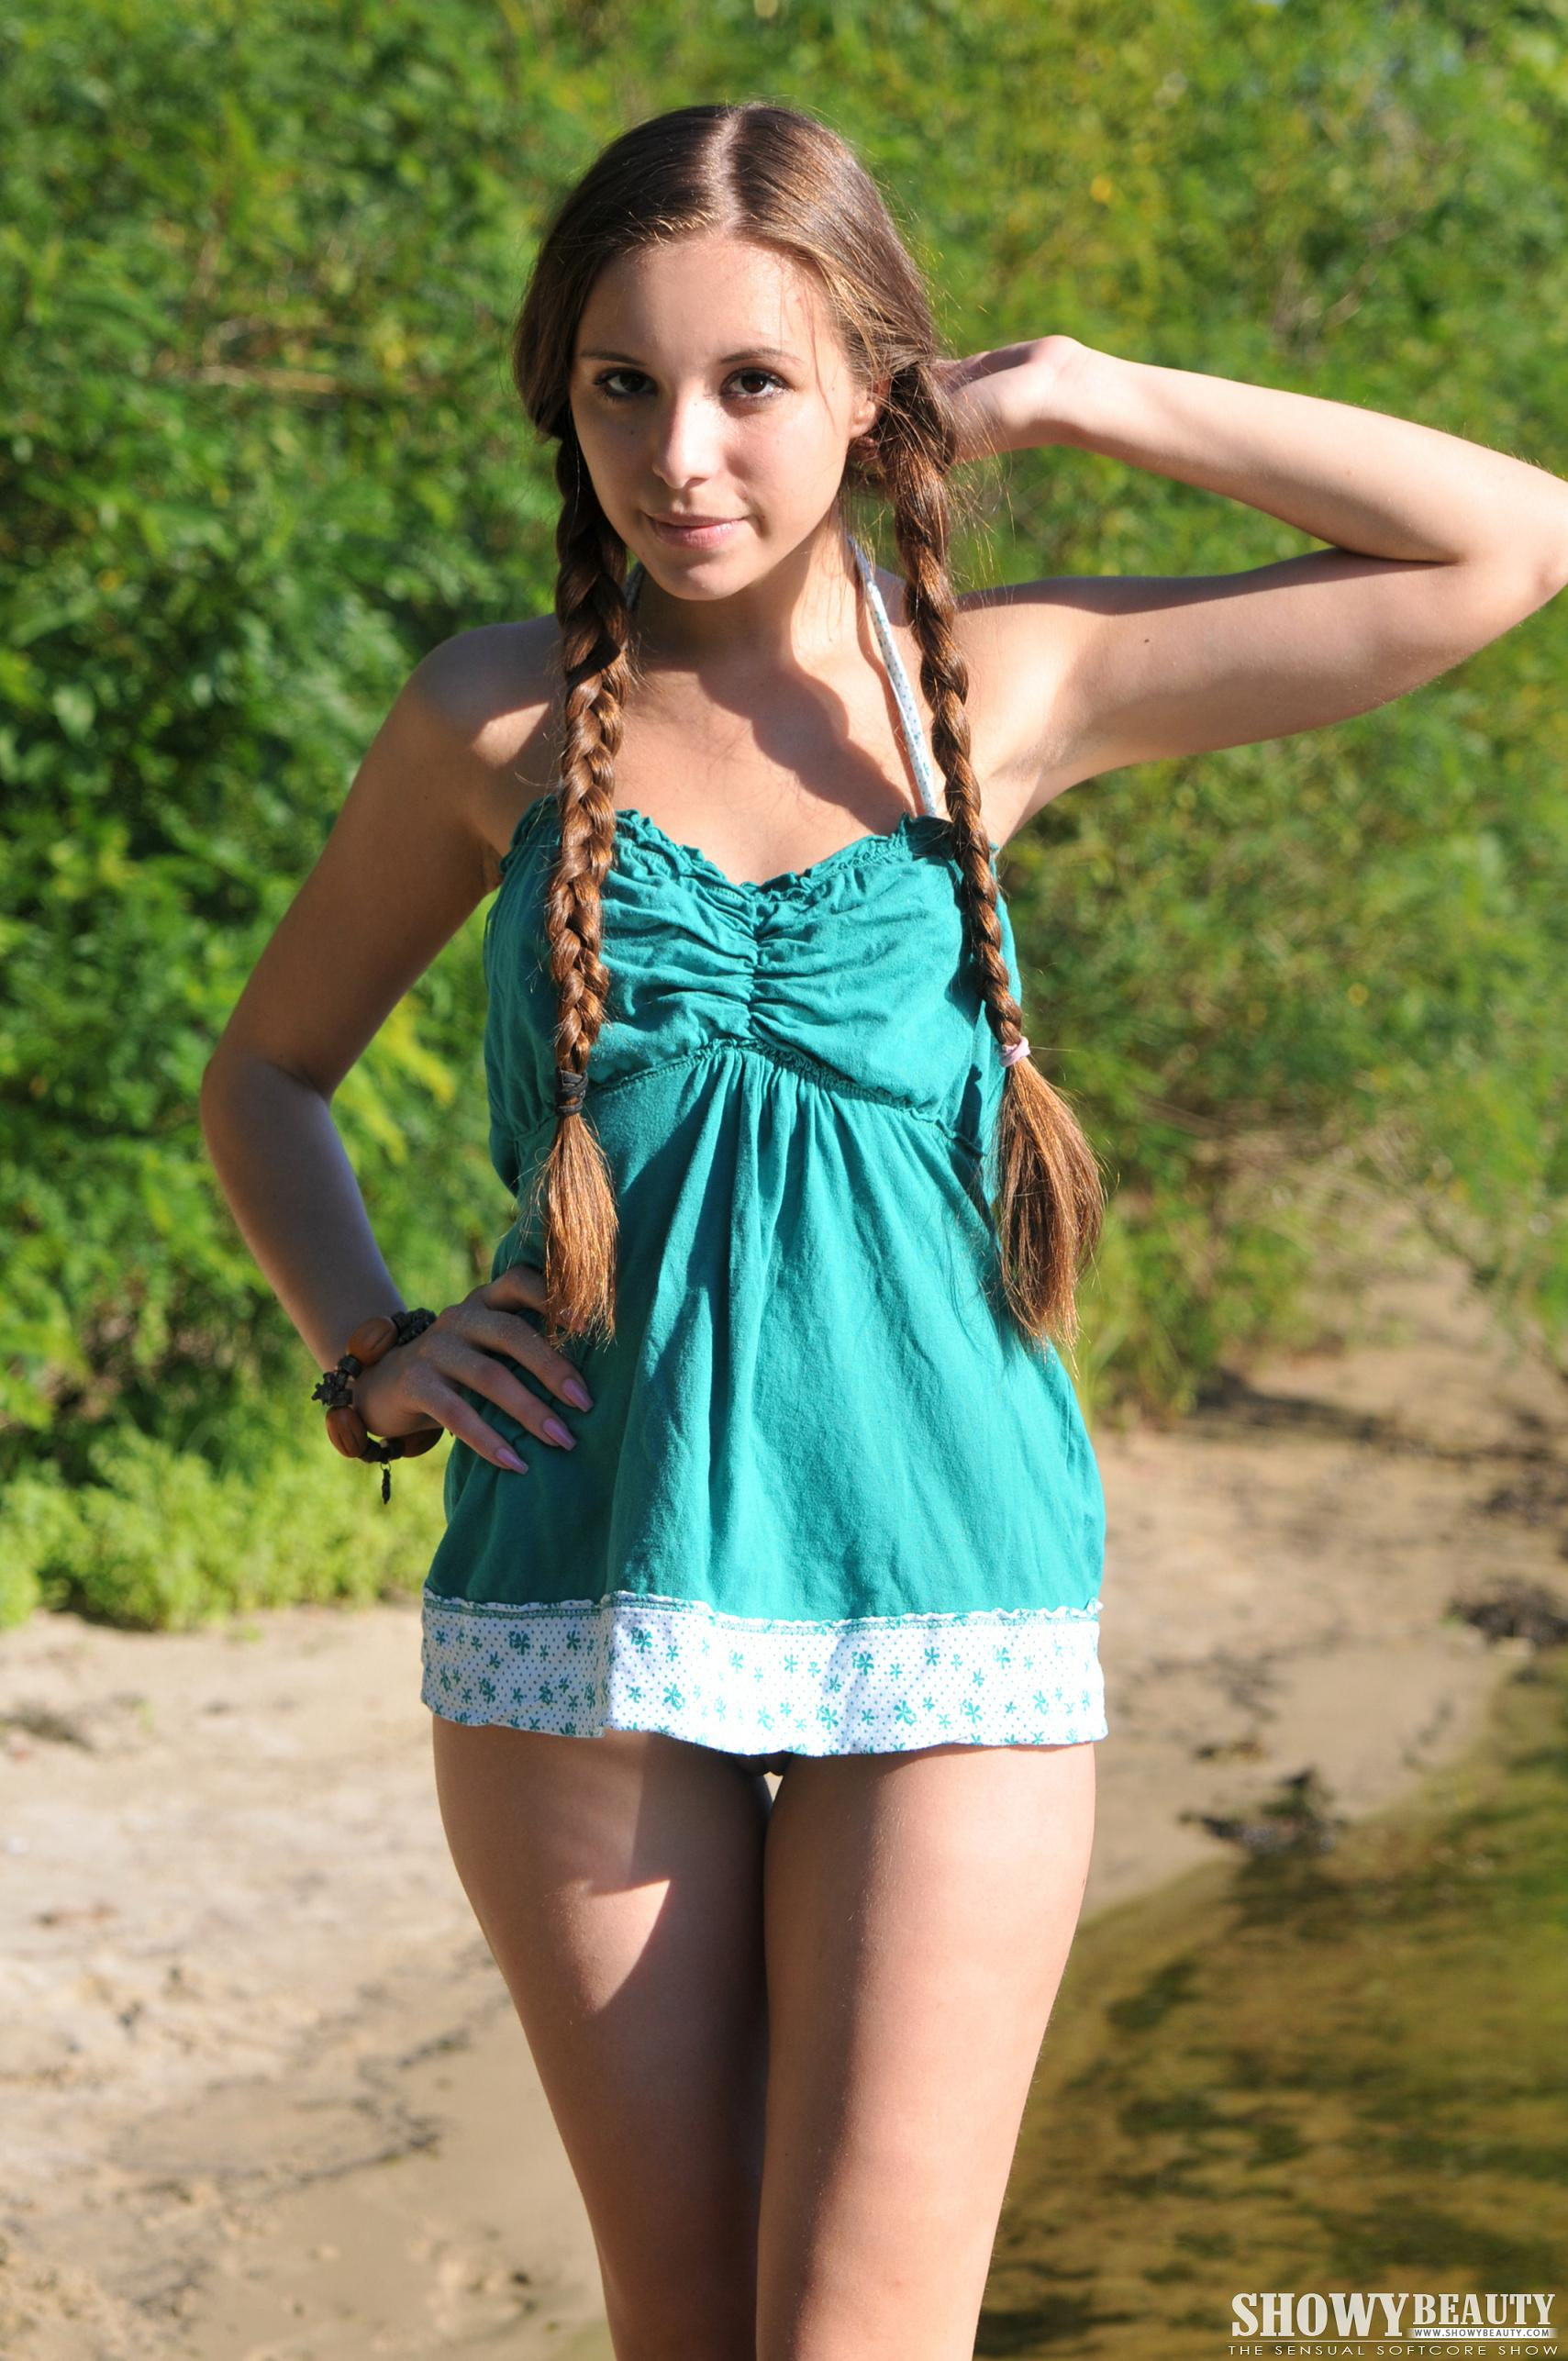 Nude chested jpg pics young flat free